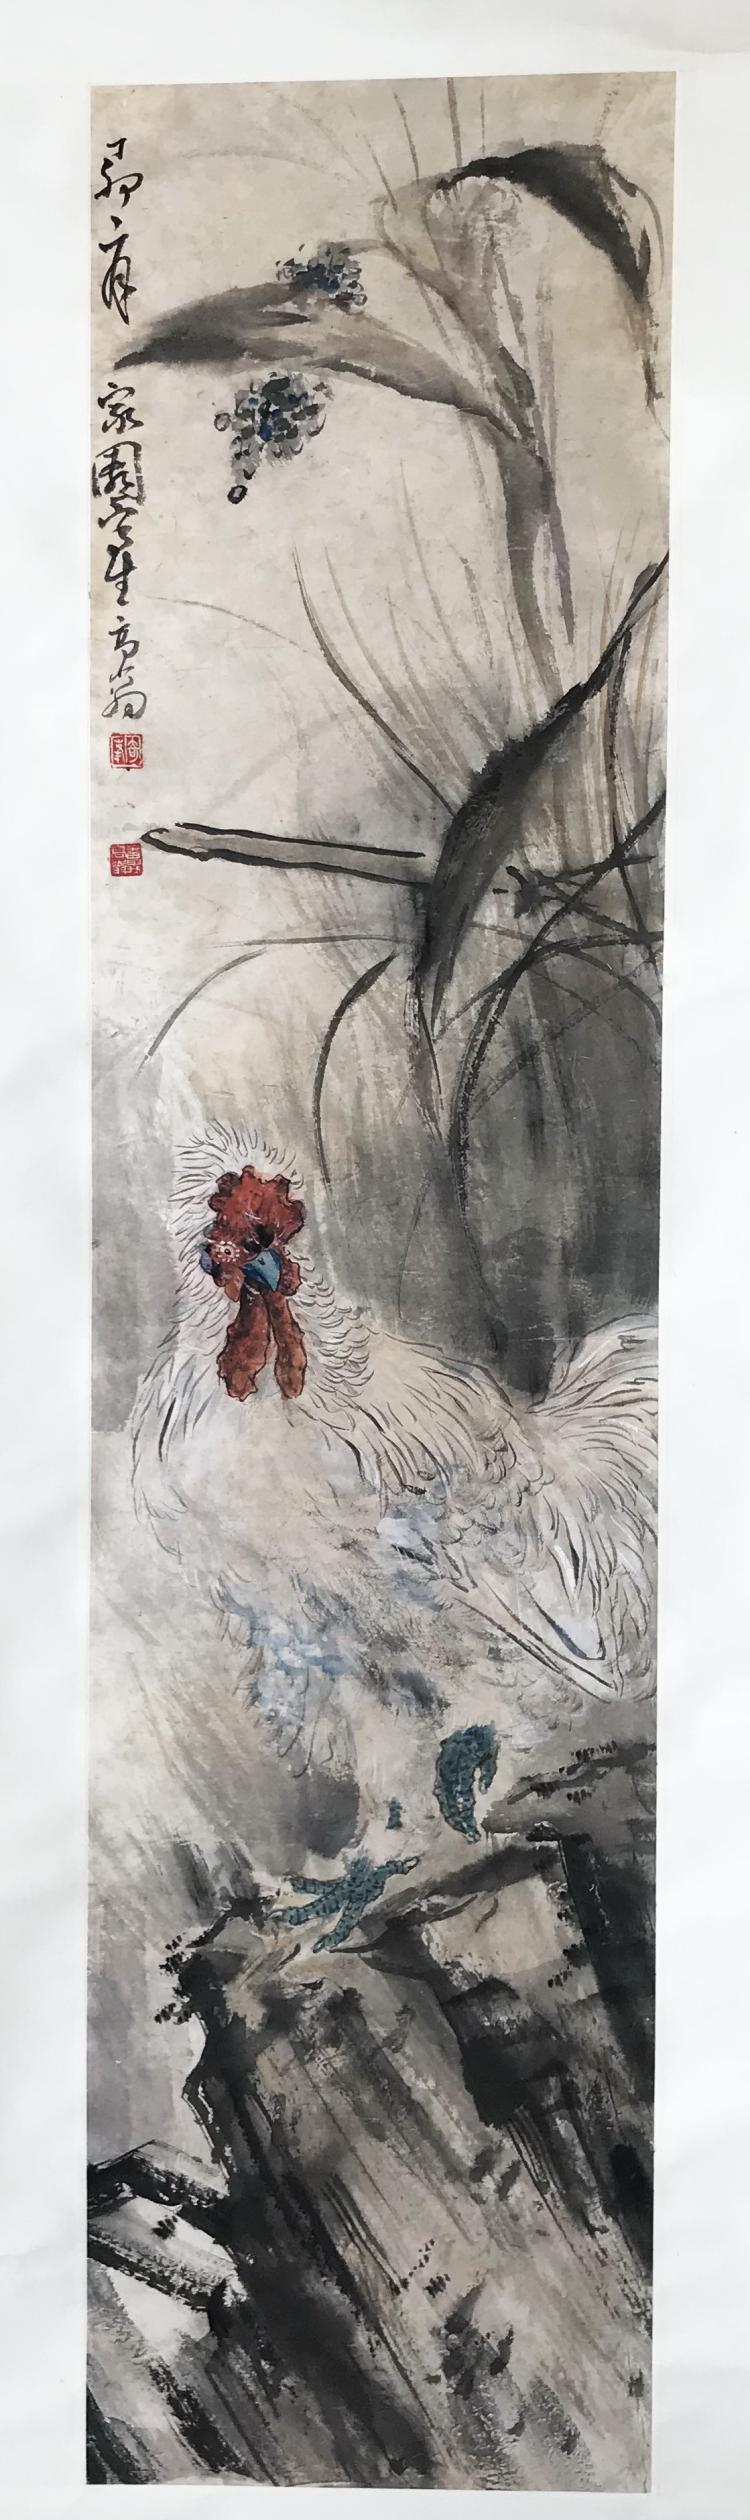 CHINESE SCROLL PAINTING OF ROOSTER AND FLOWER